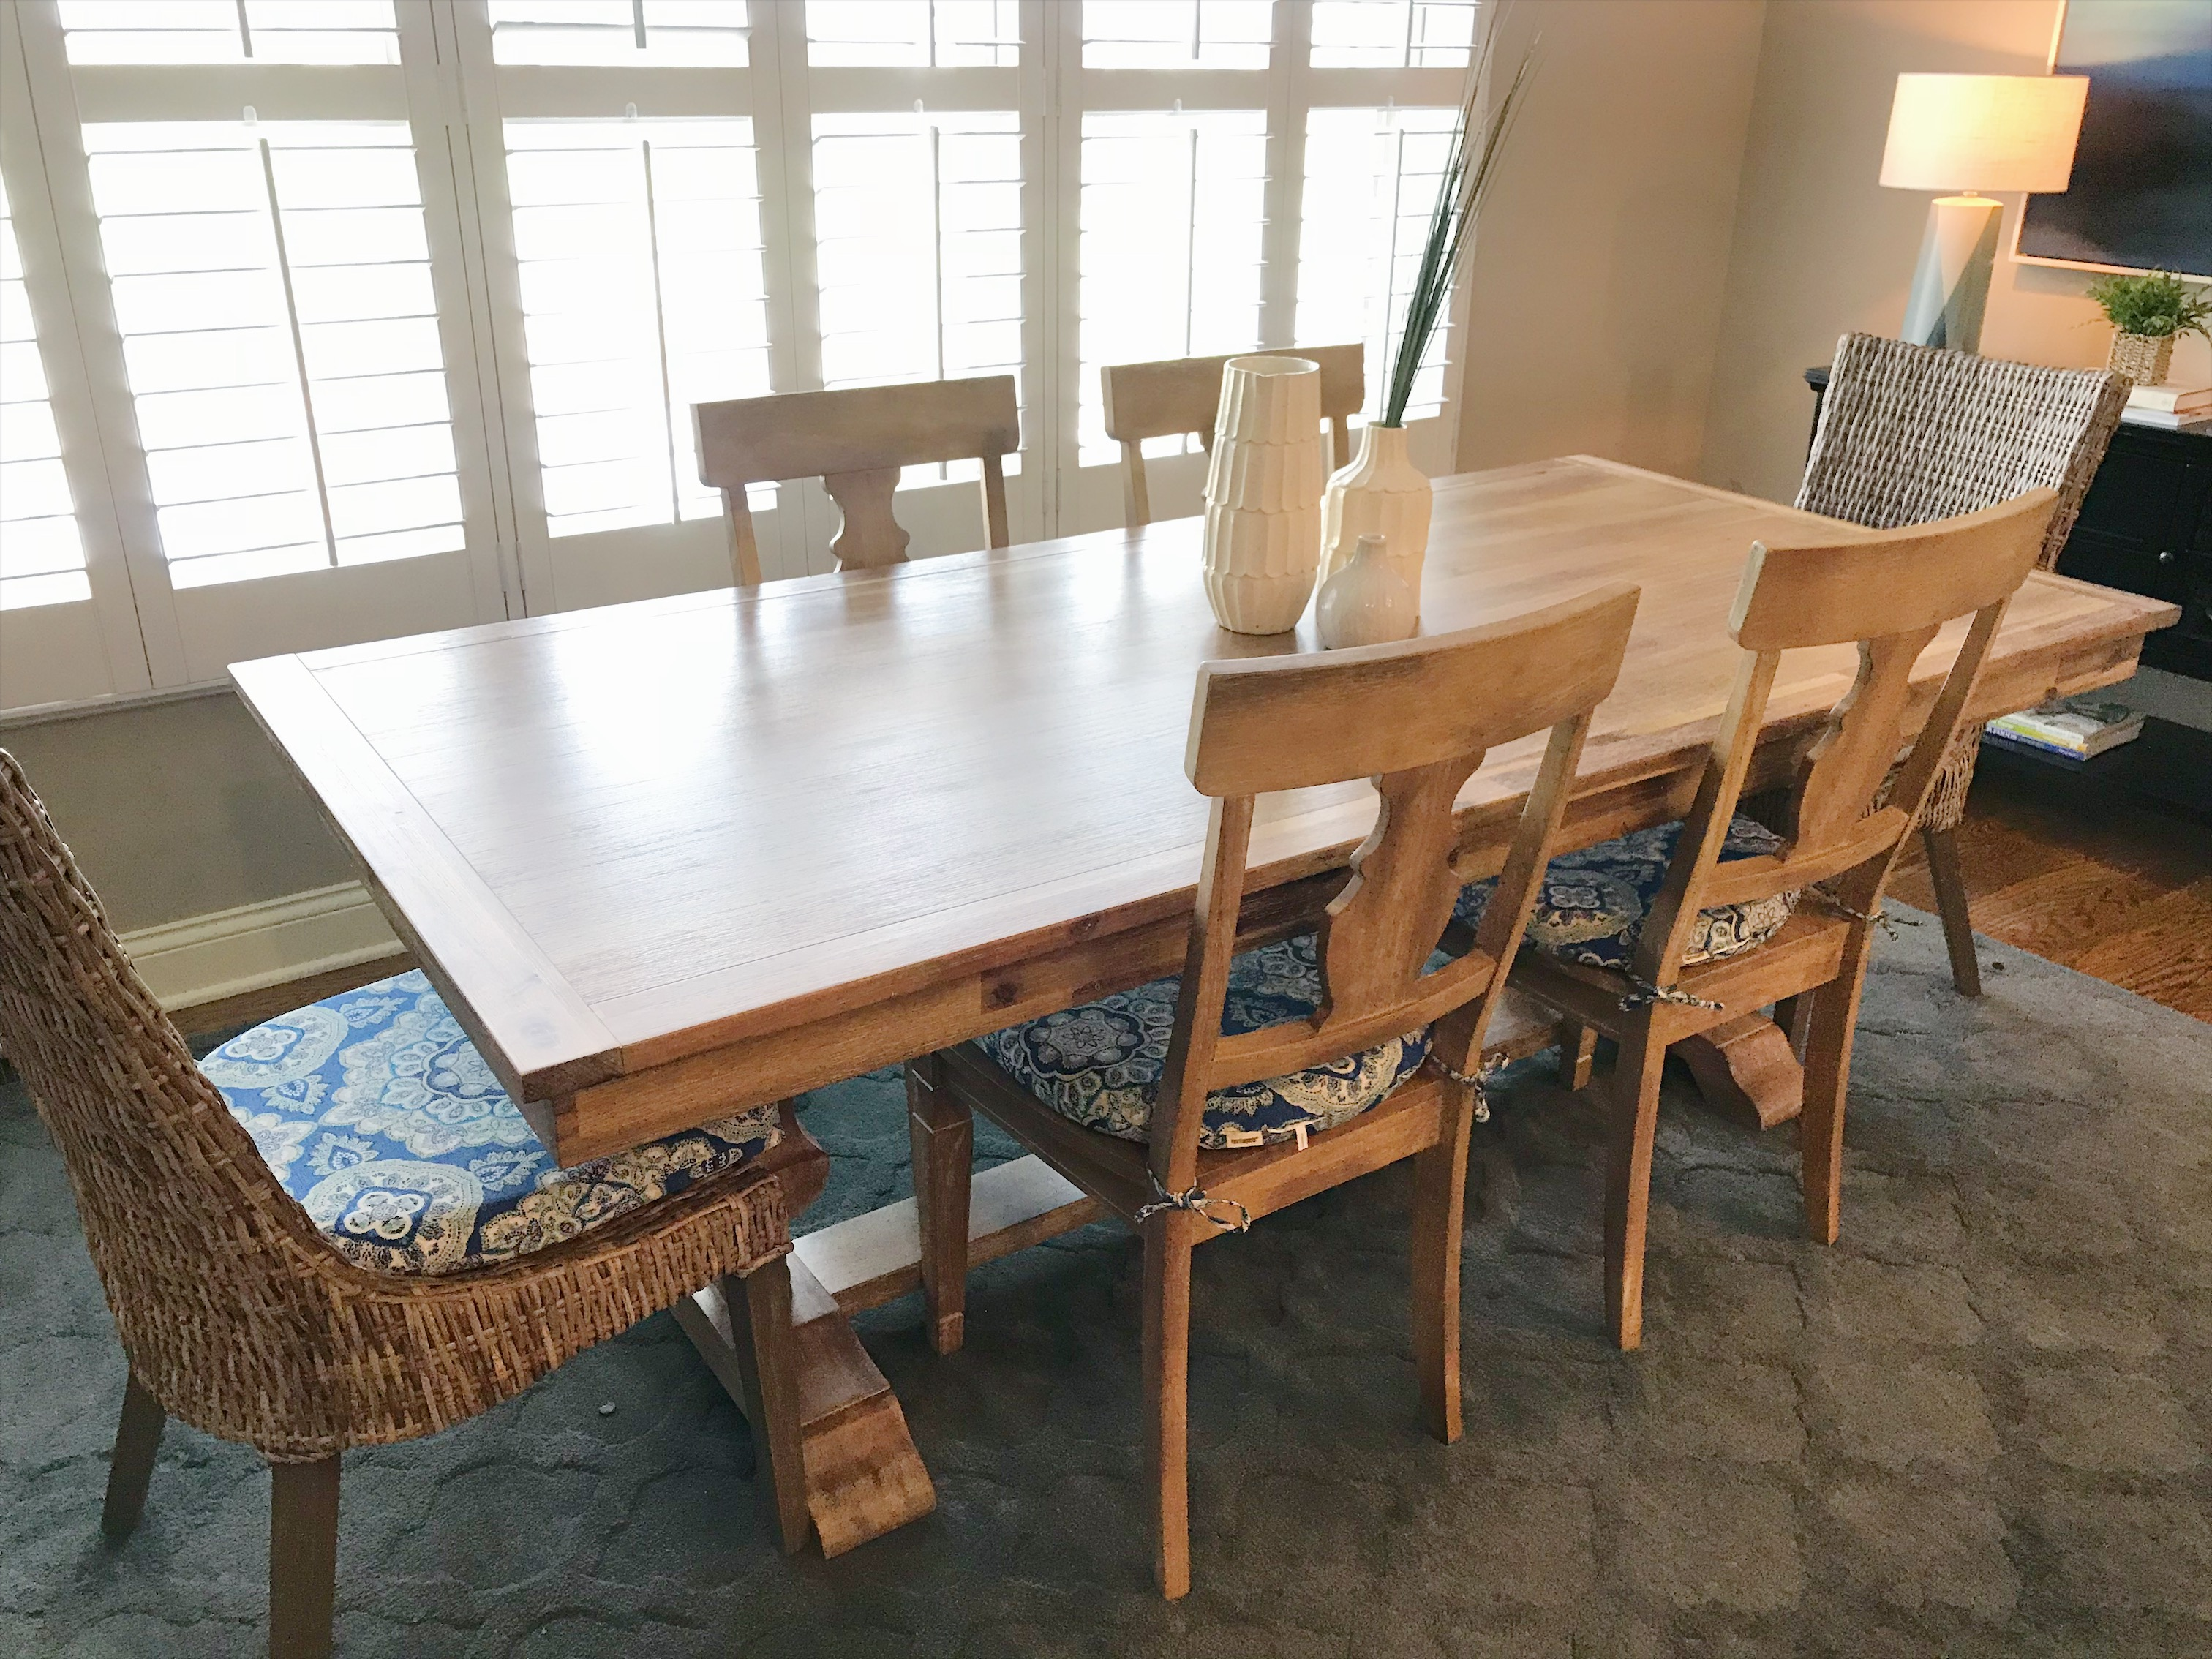 new dining table from pier 1